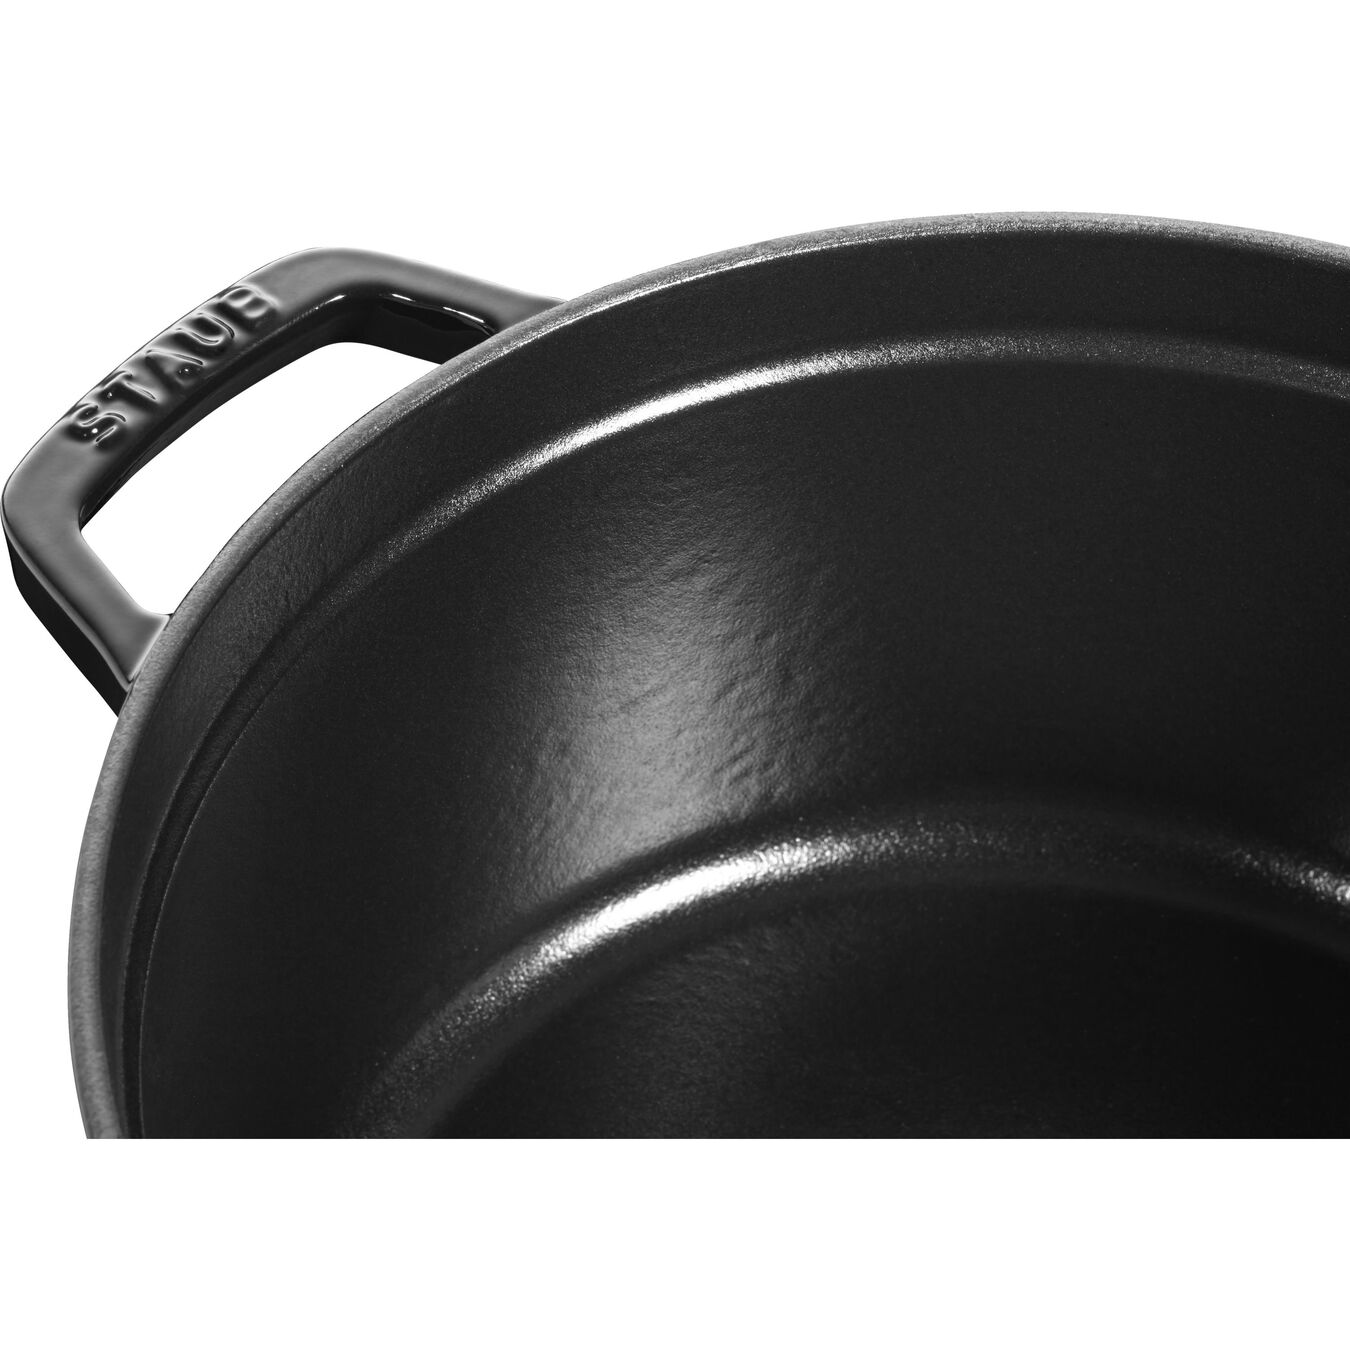 5.25 l Cast iron round Cocotte, shiny-black - Visual Imperfections,,large 2